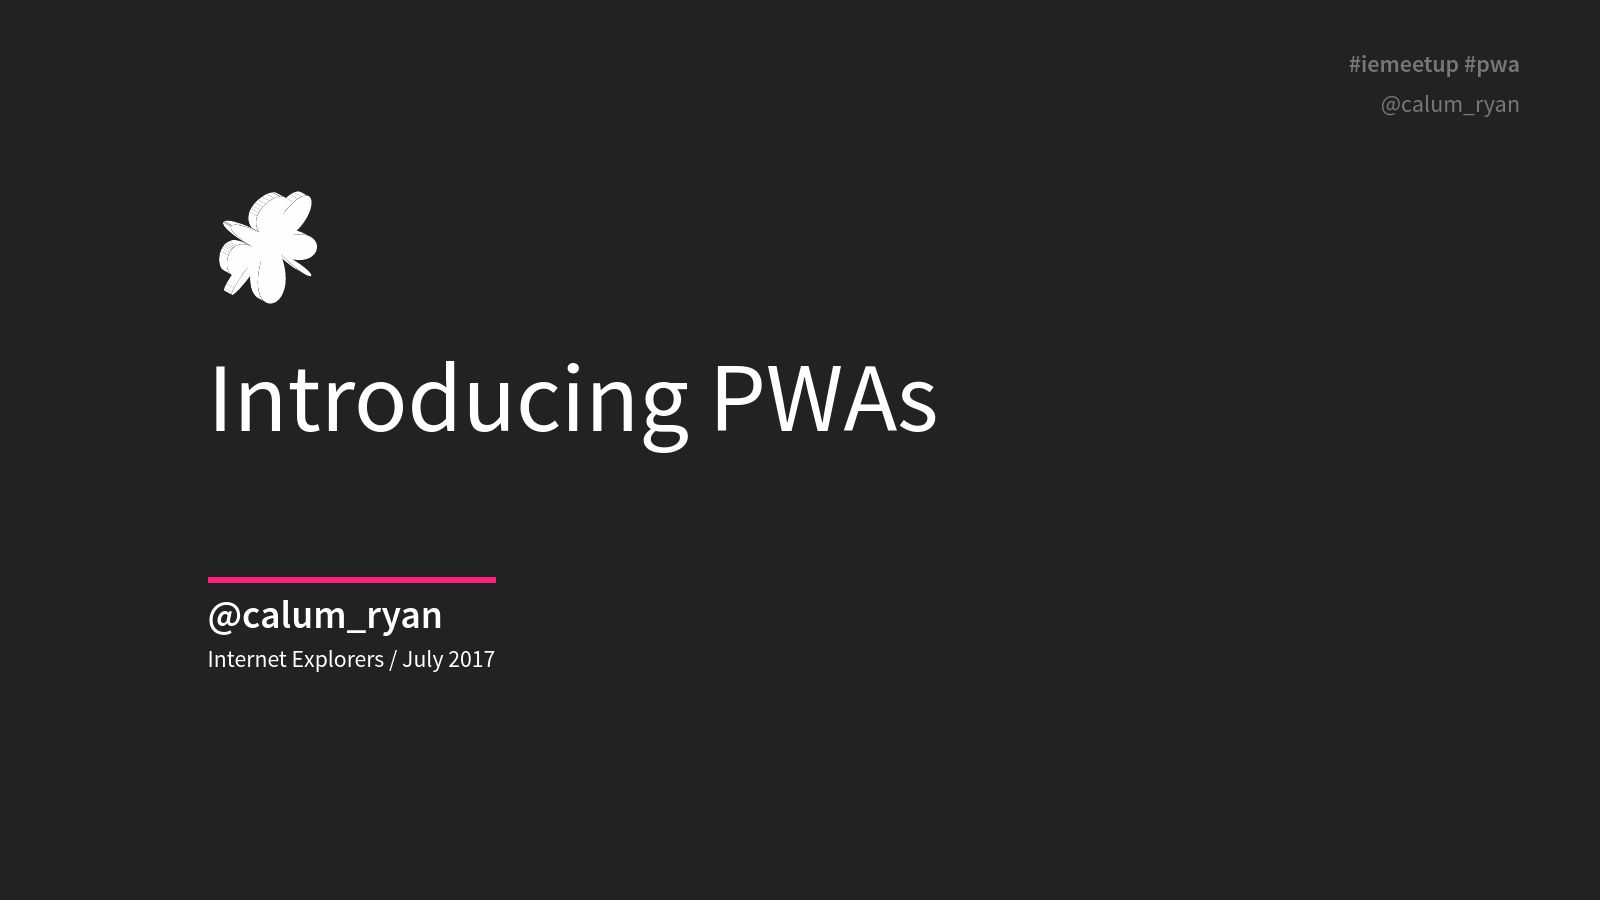 Introducing PWAs